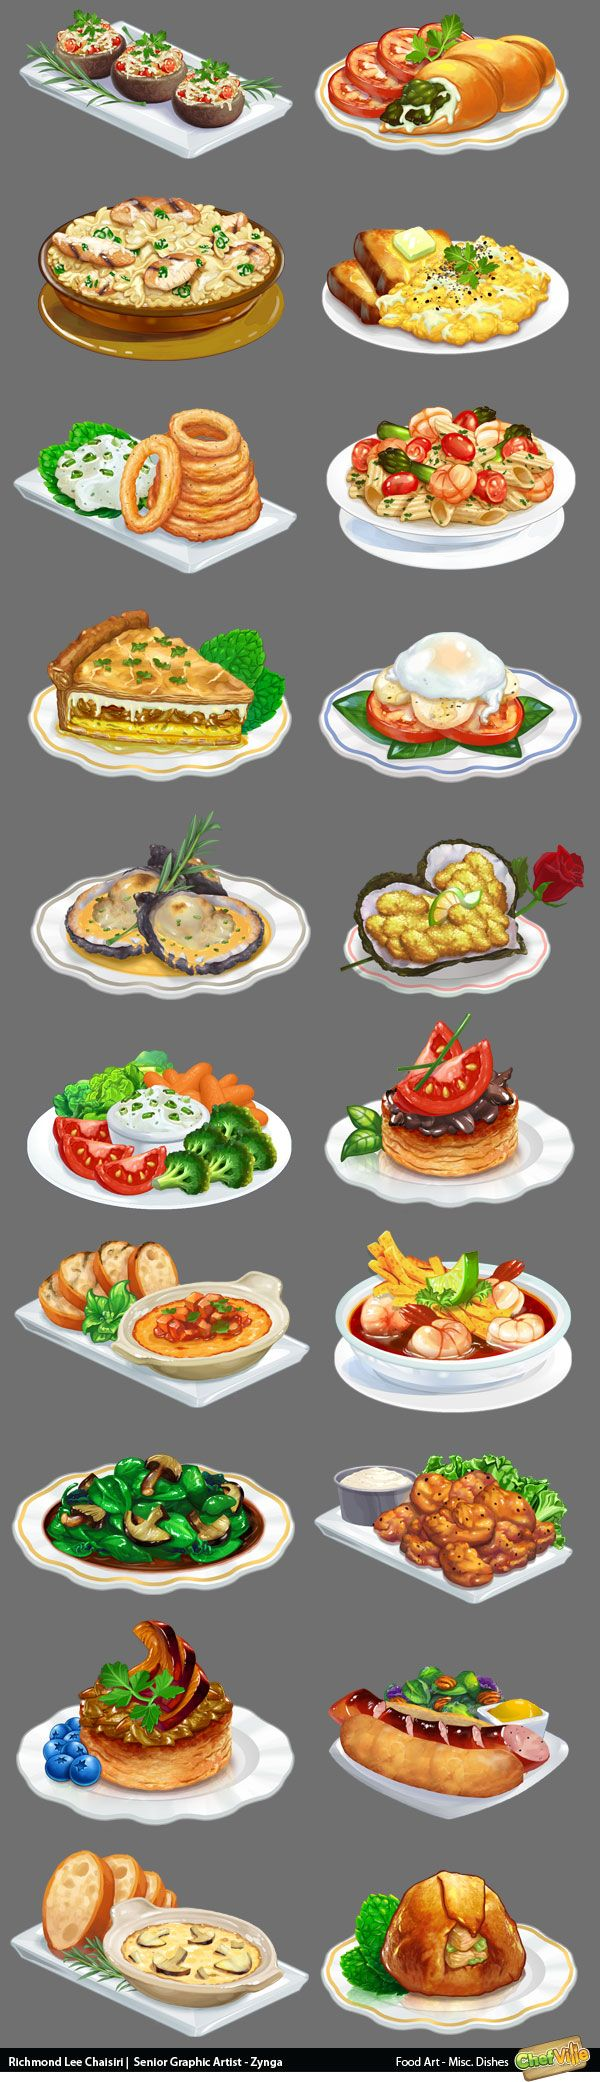 Food Illustrations for Chefville by Richmond Lee Chaisiri from Art-Eater